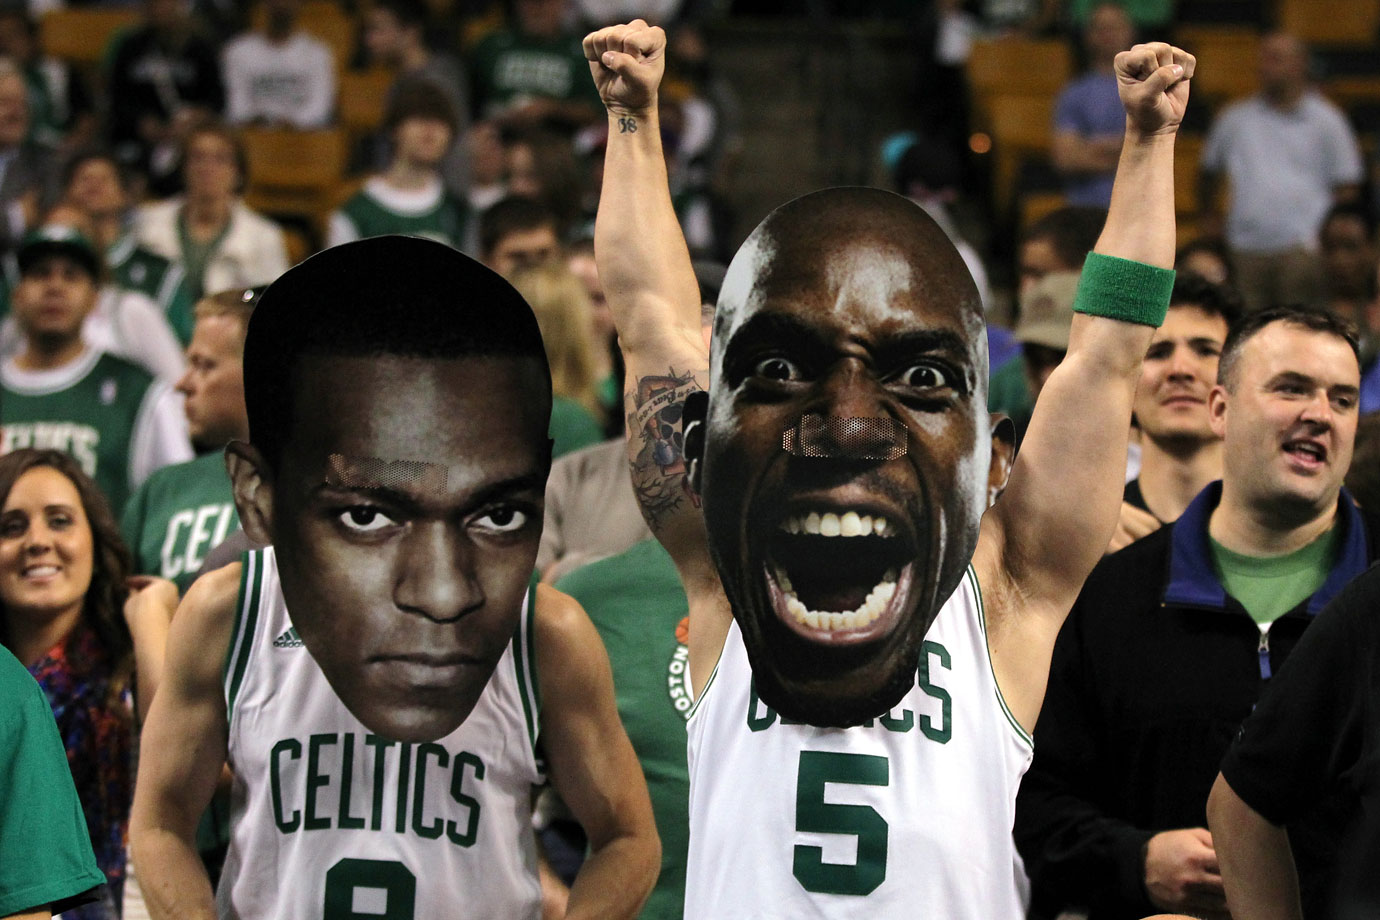 Fans wearing masks of Rajon Rondo and Kevin Garnett pose during Game 6 of the Eastern Conference Finals between the Celtics and Heat in Boston.